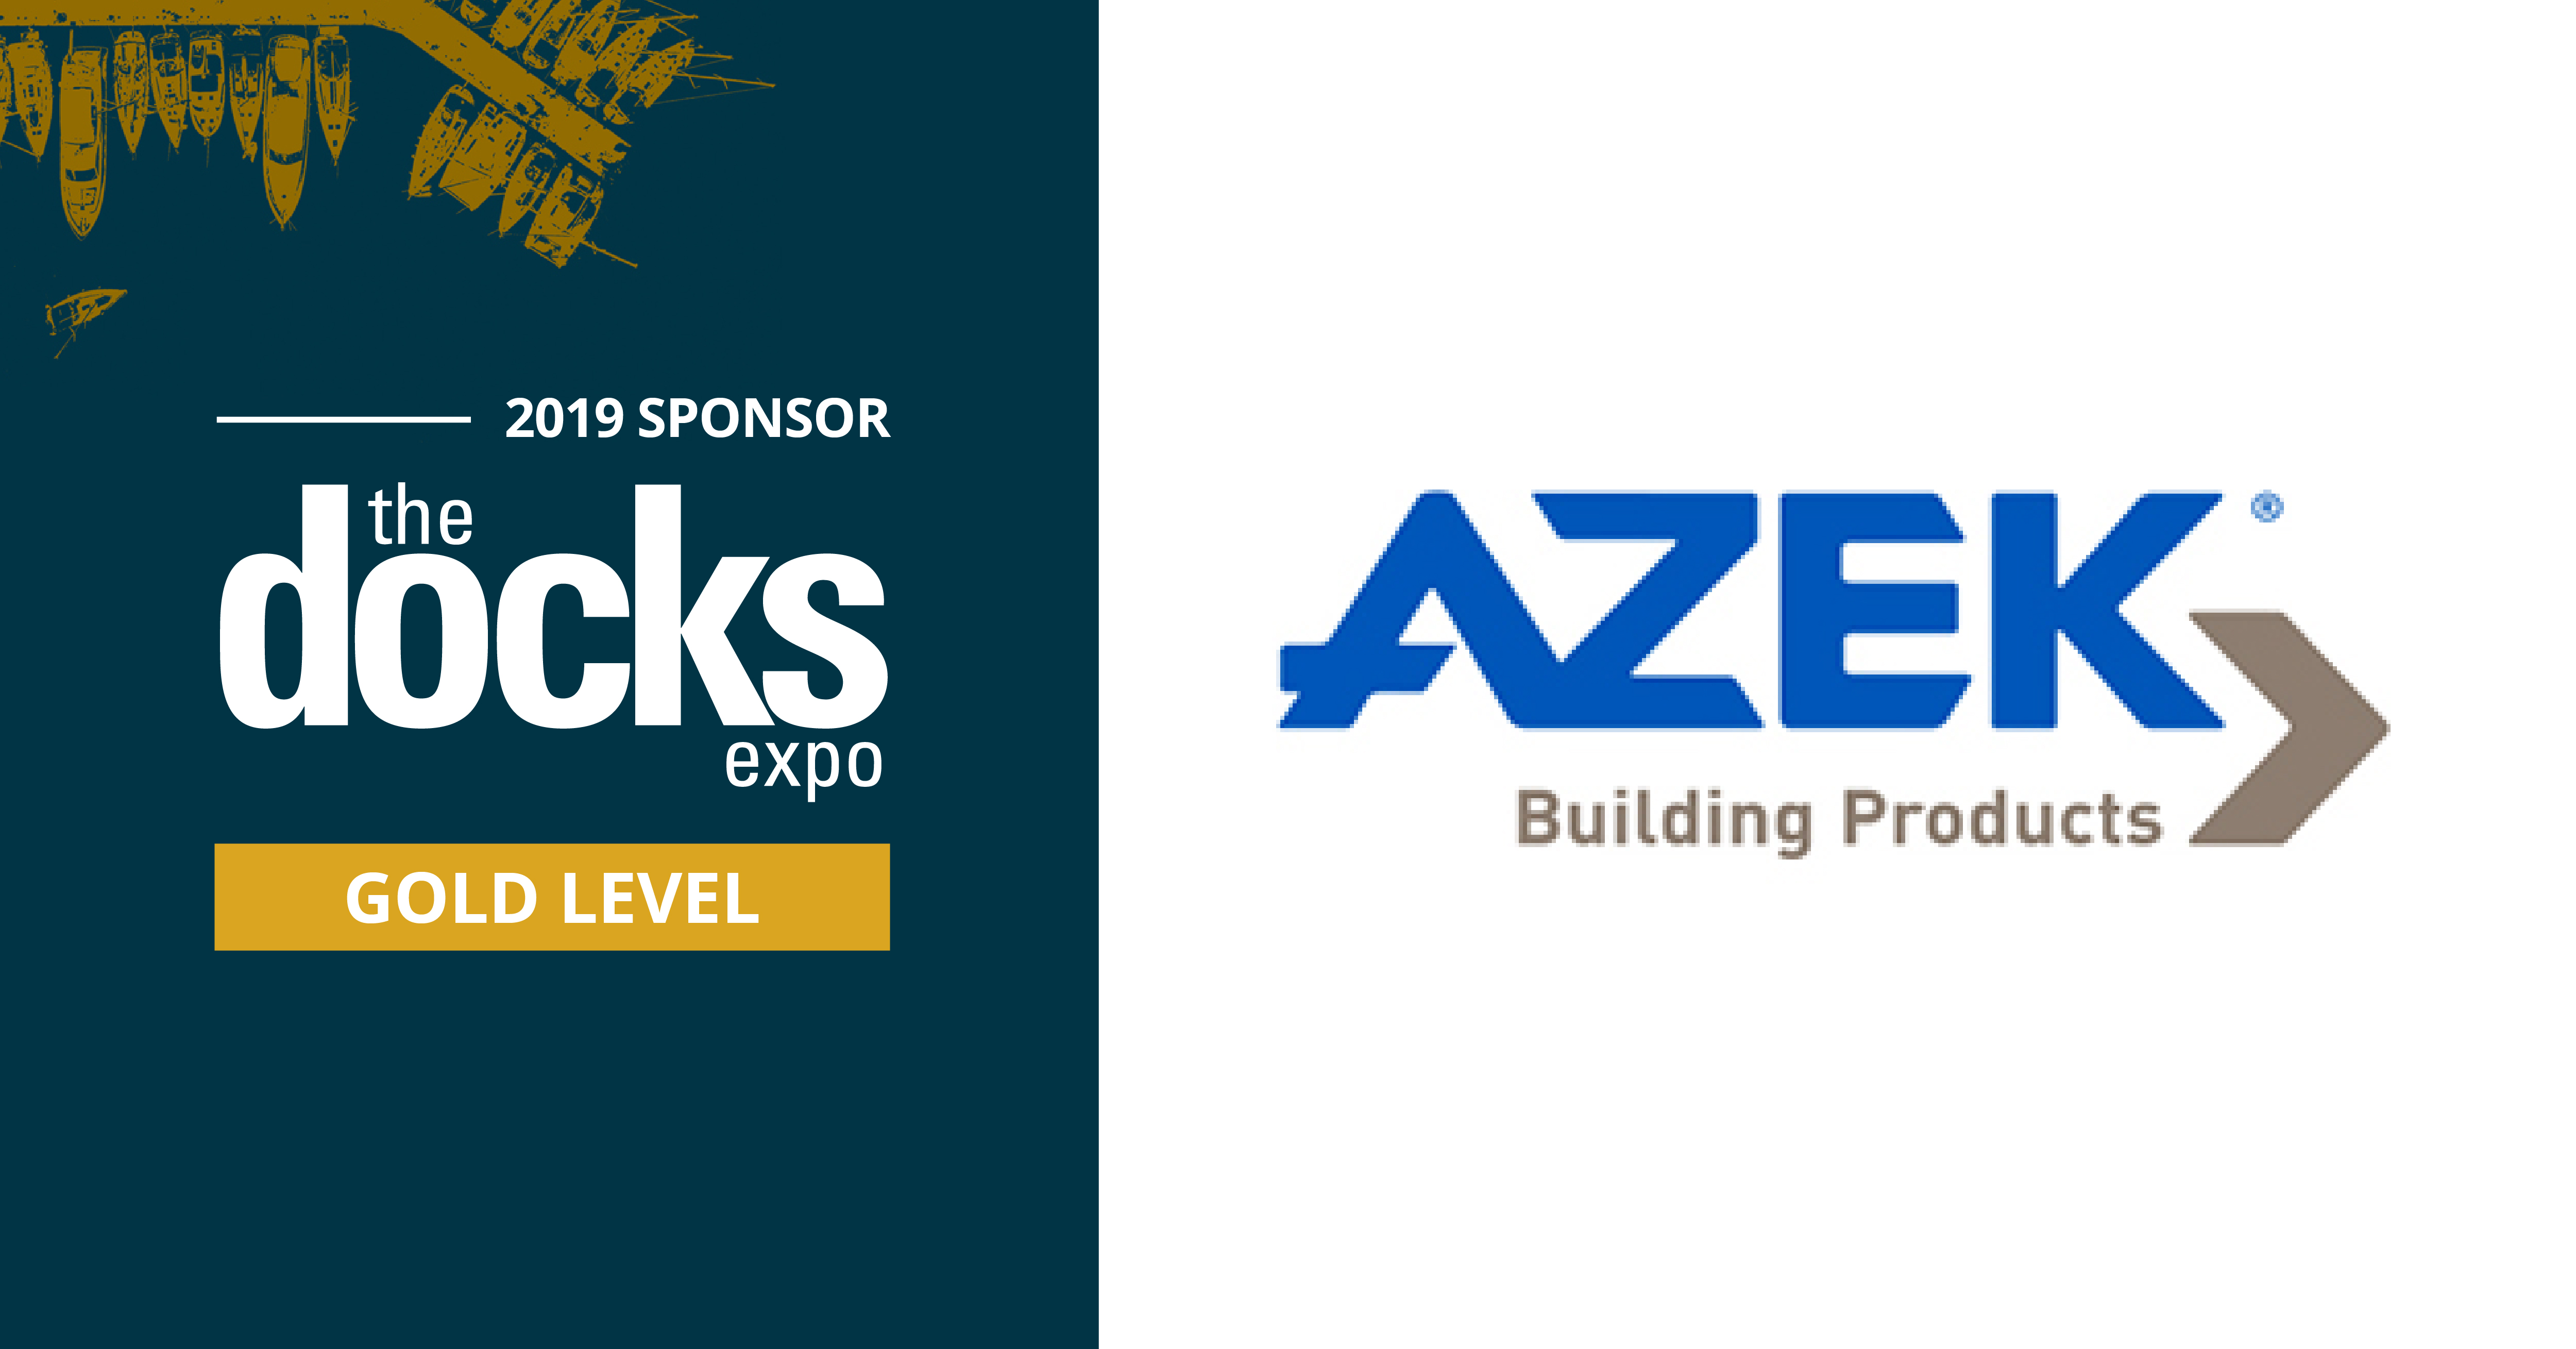 AZEK Building Products | The Docks Expo